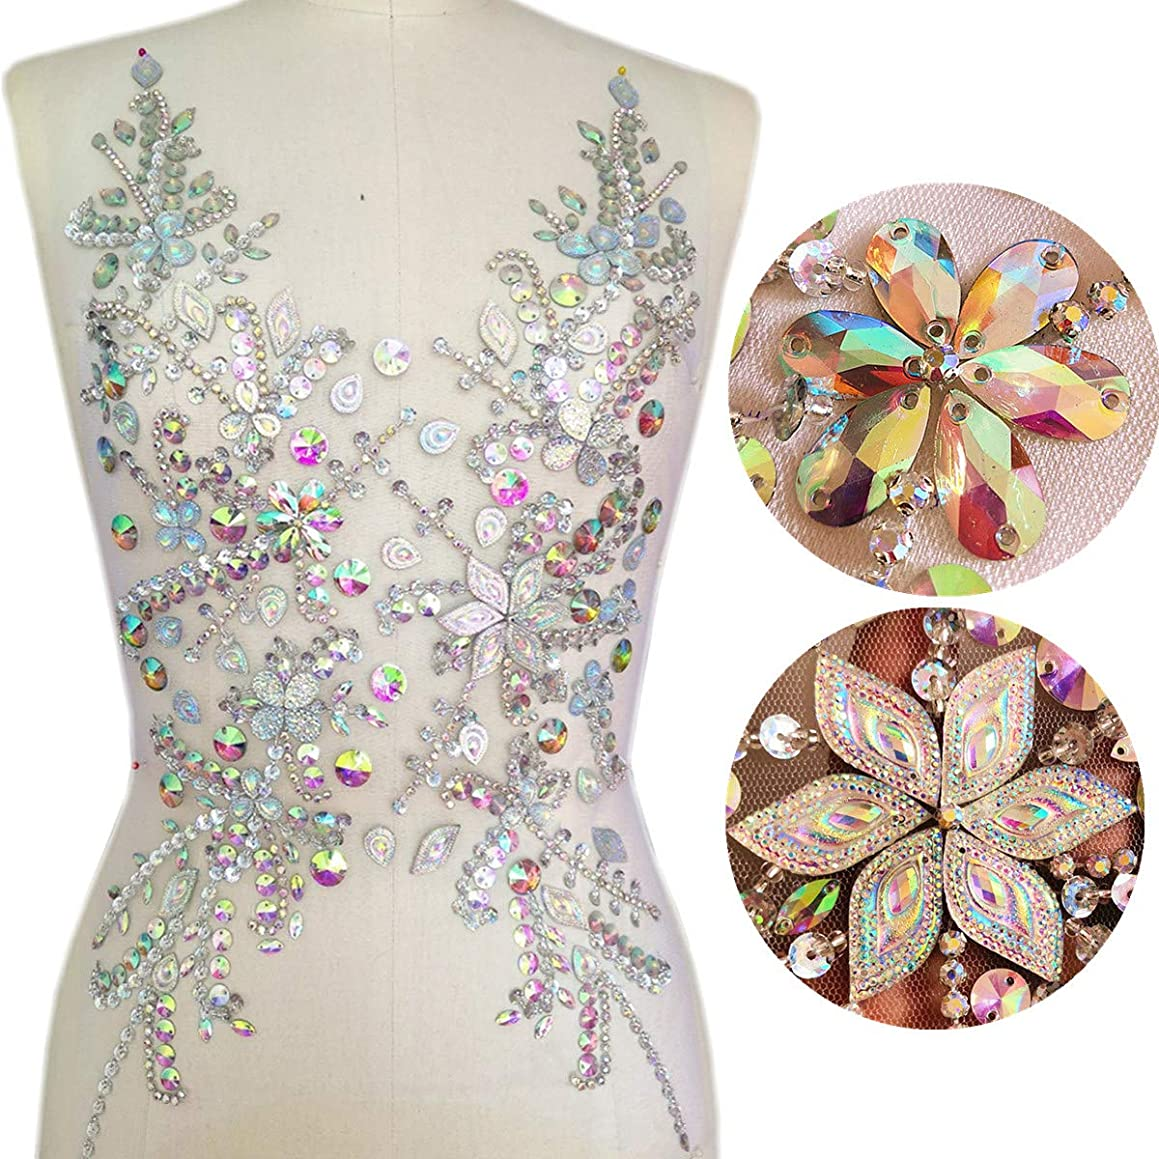 12x21 Inch Sew on AB Sequin Crystal Rhinestones Beaded Clothes Appliques and Patches for Sewing Clothes Wedding Bridal Dress Decorative (AB)